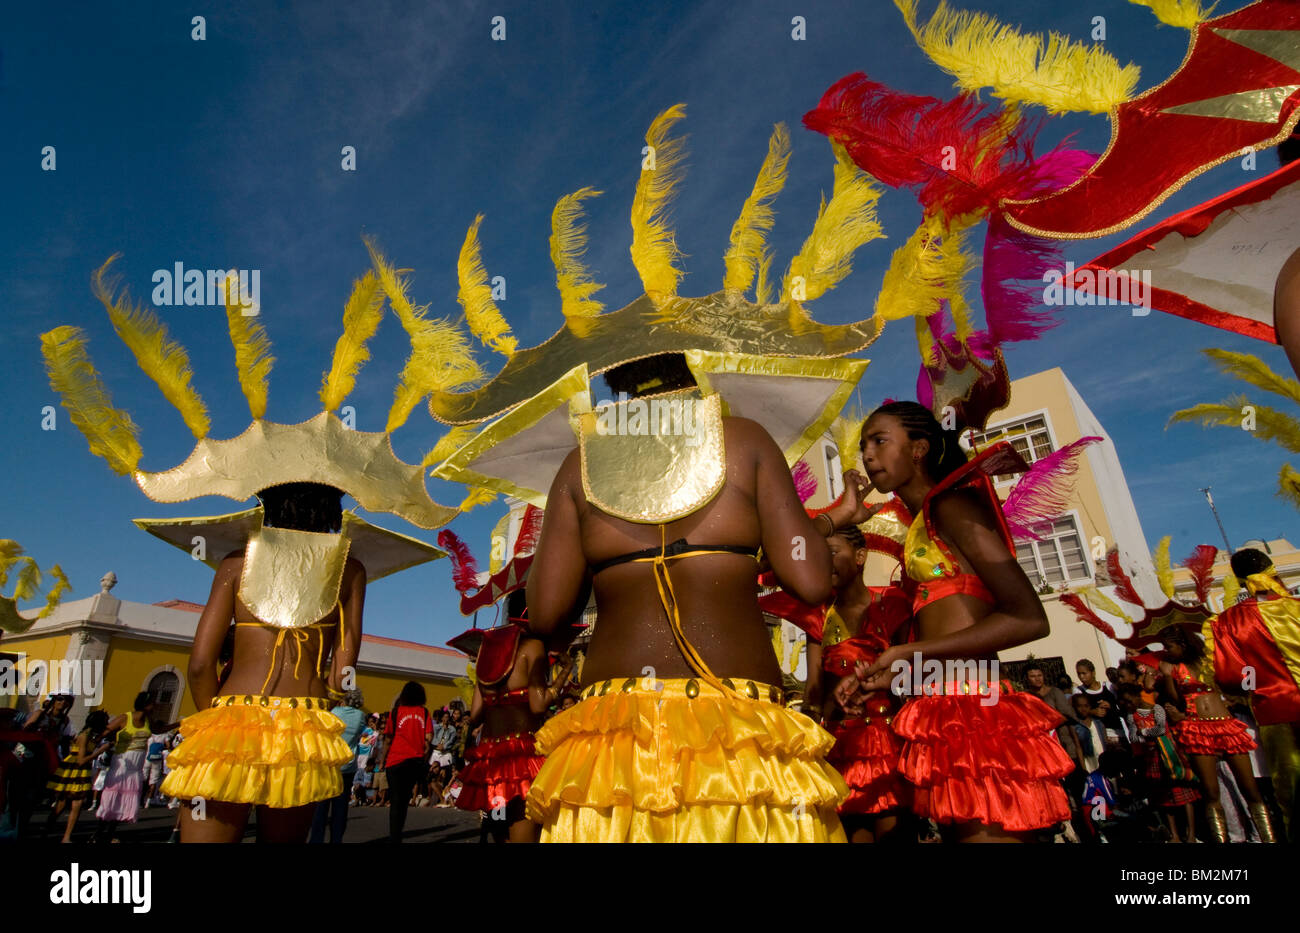 Women in colourful Carnival costume dancing, Mindelo, Sao Vicente, Cape Verde - Stock Image